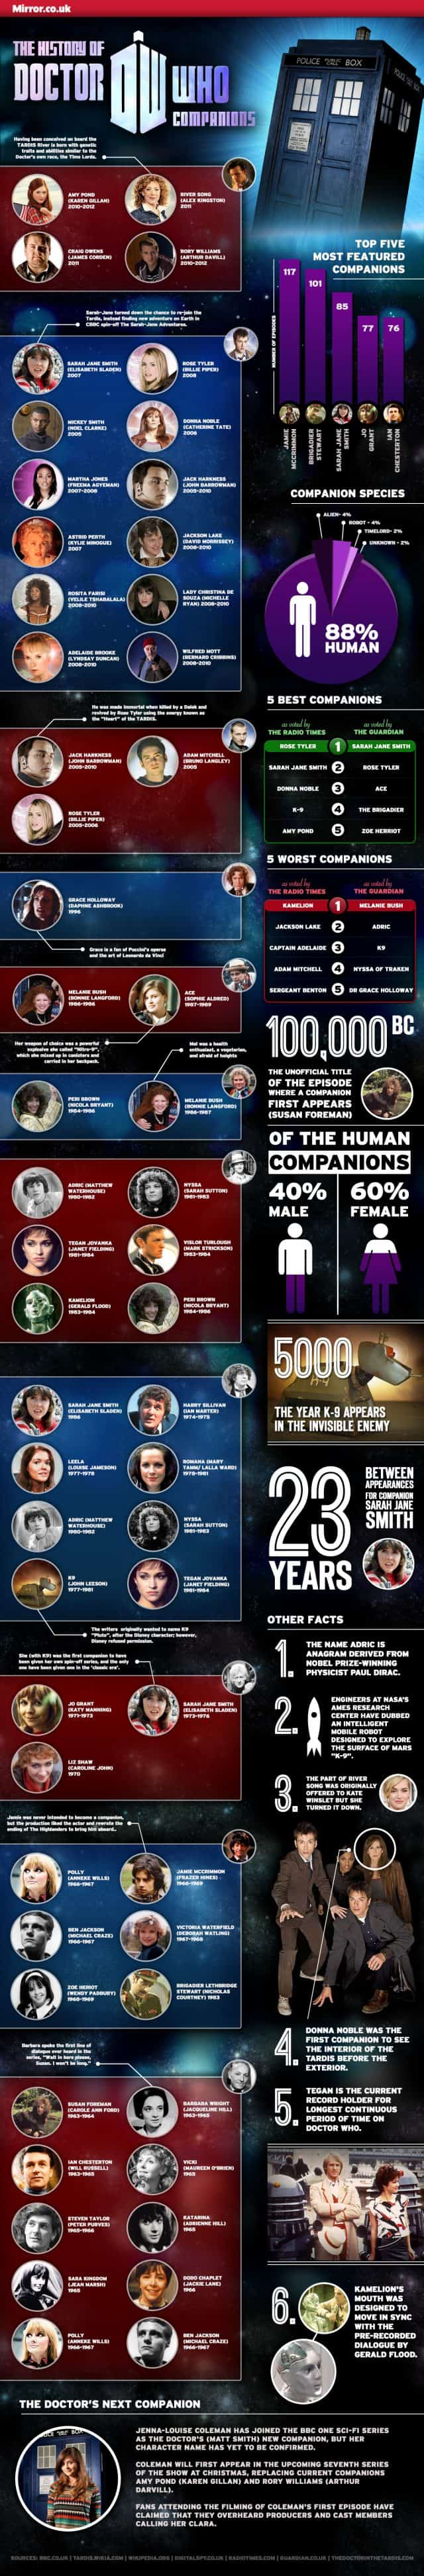 The History of Doctor Who Companions [infographic]